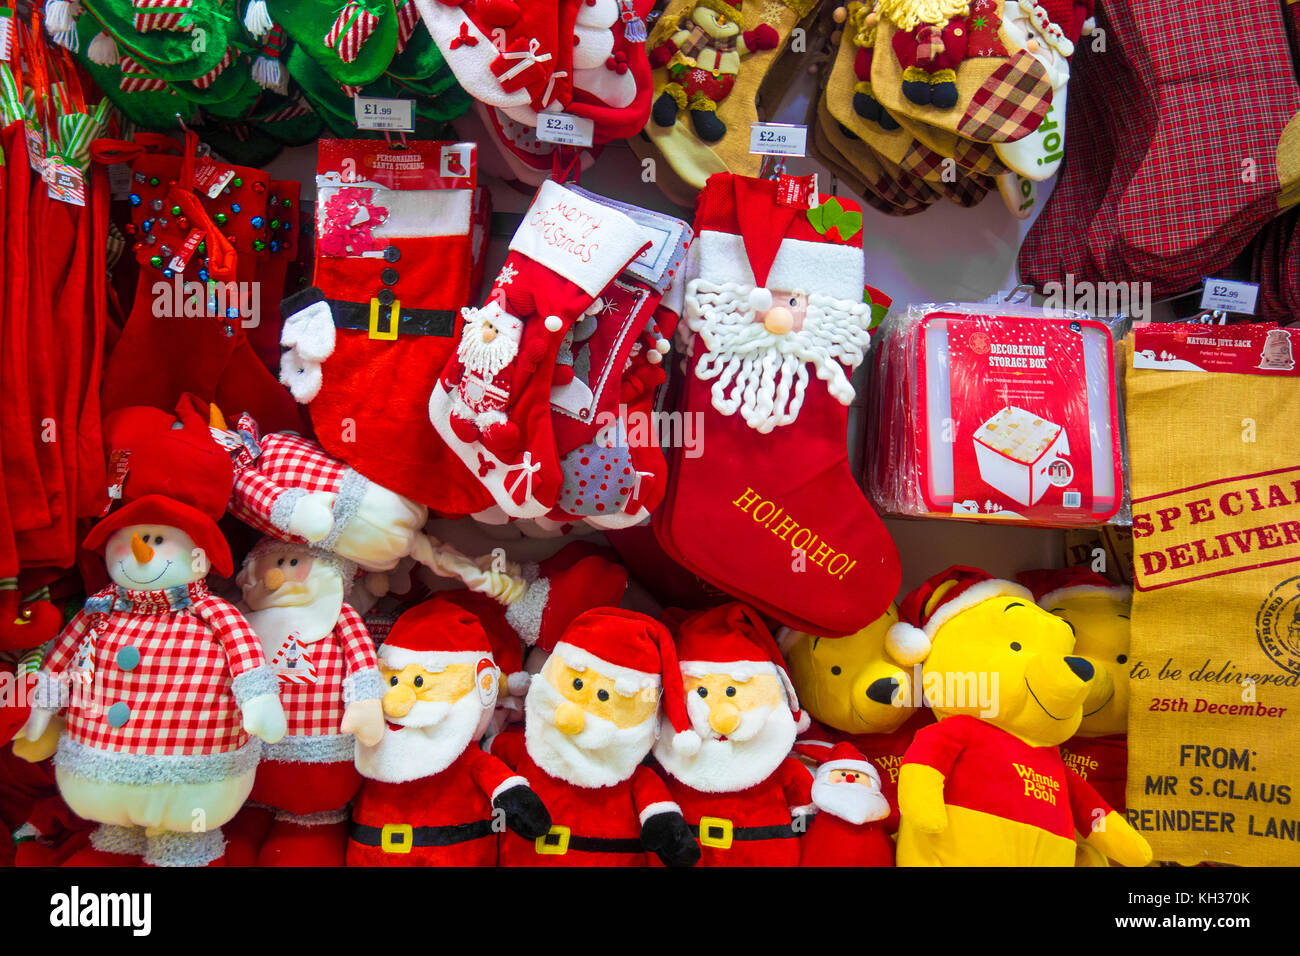 christmas gifts and decorations on sale in a shop - Stock Image